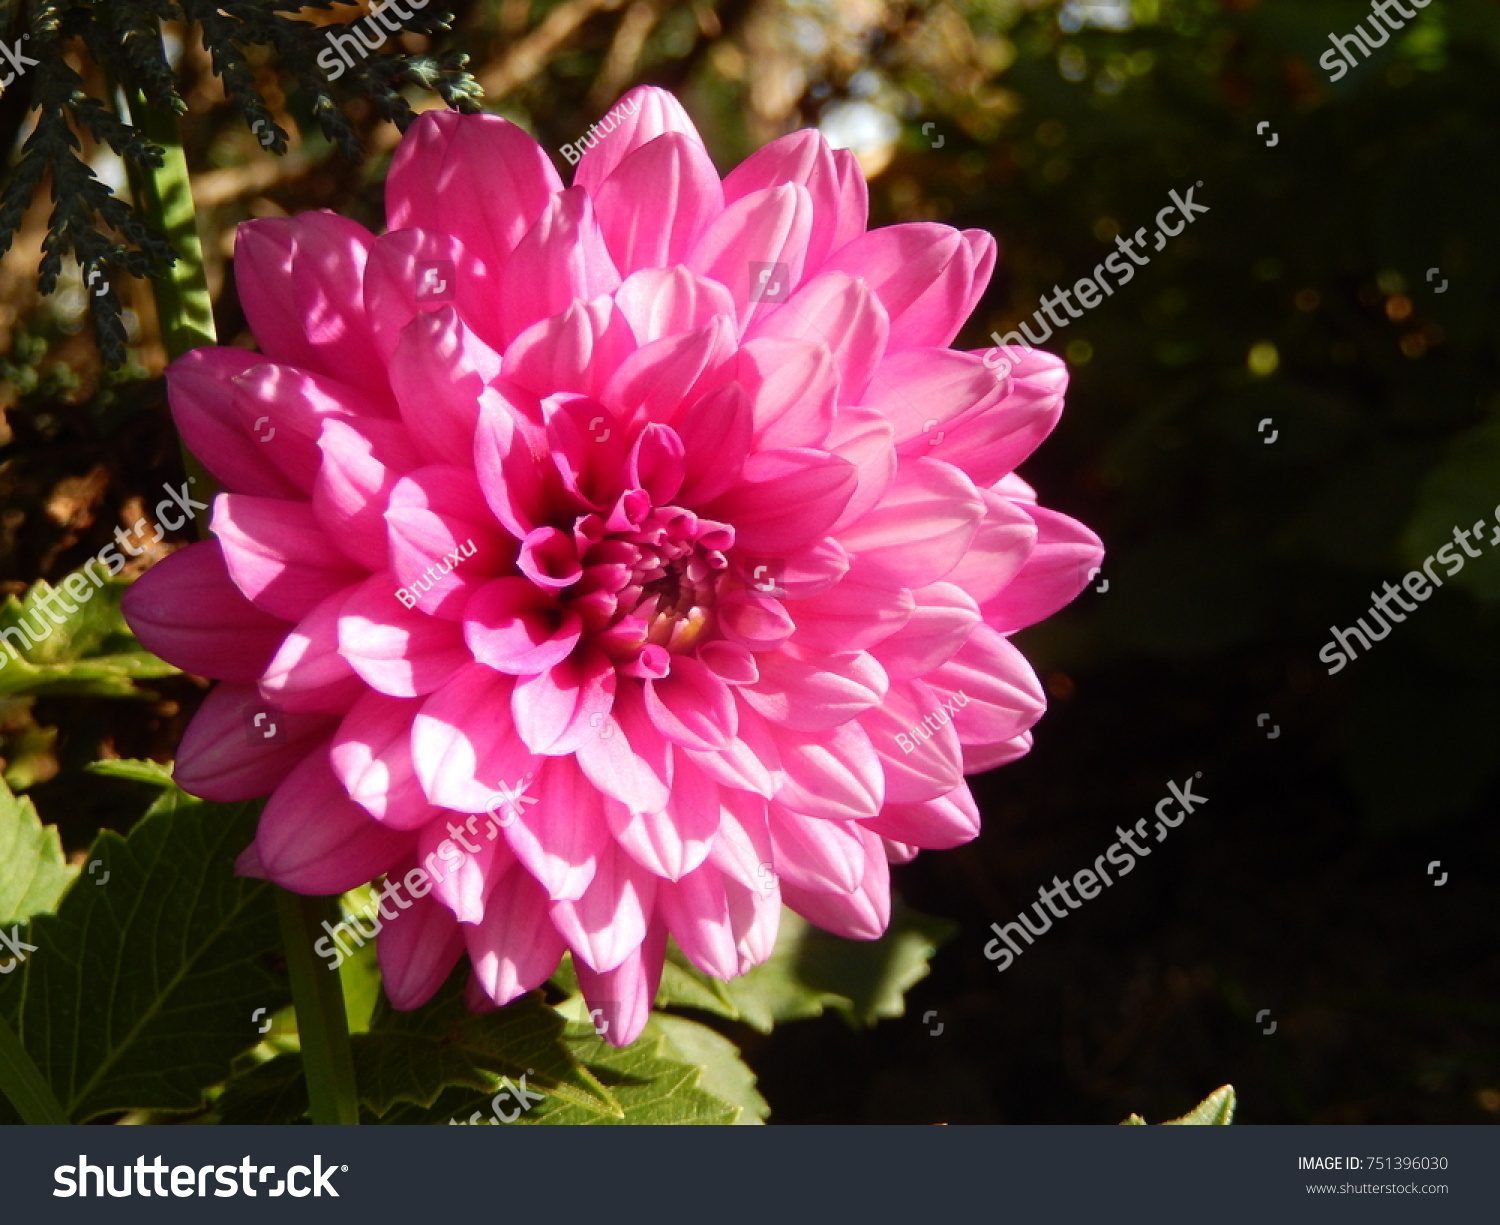 Very beautiful flowers stock photo royalty free 751396030 very beautiful flowers izmirmasajfo